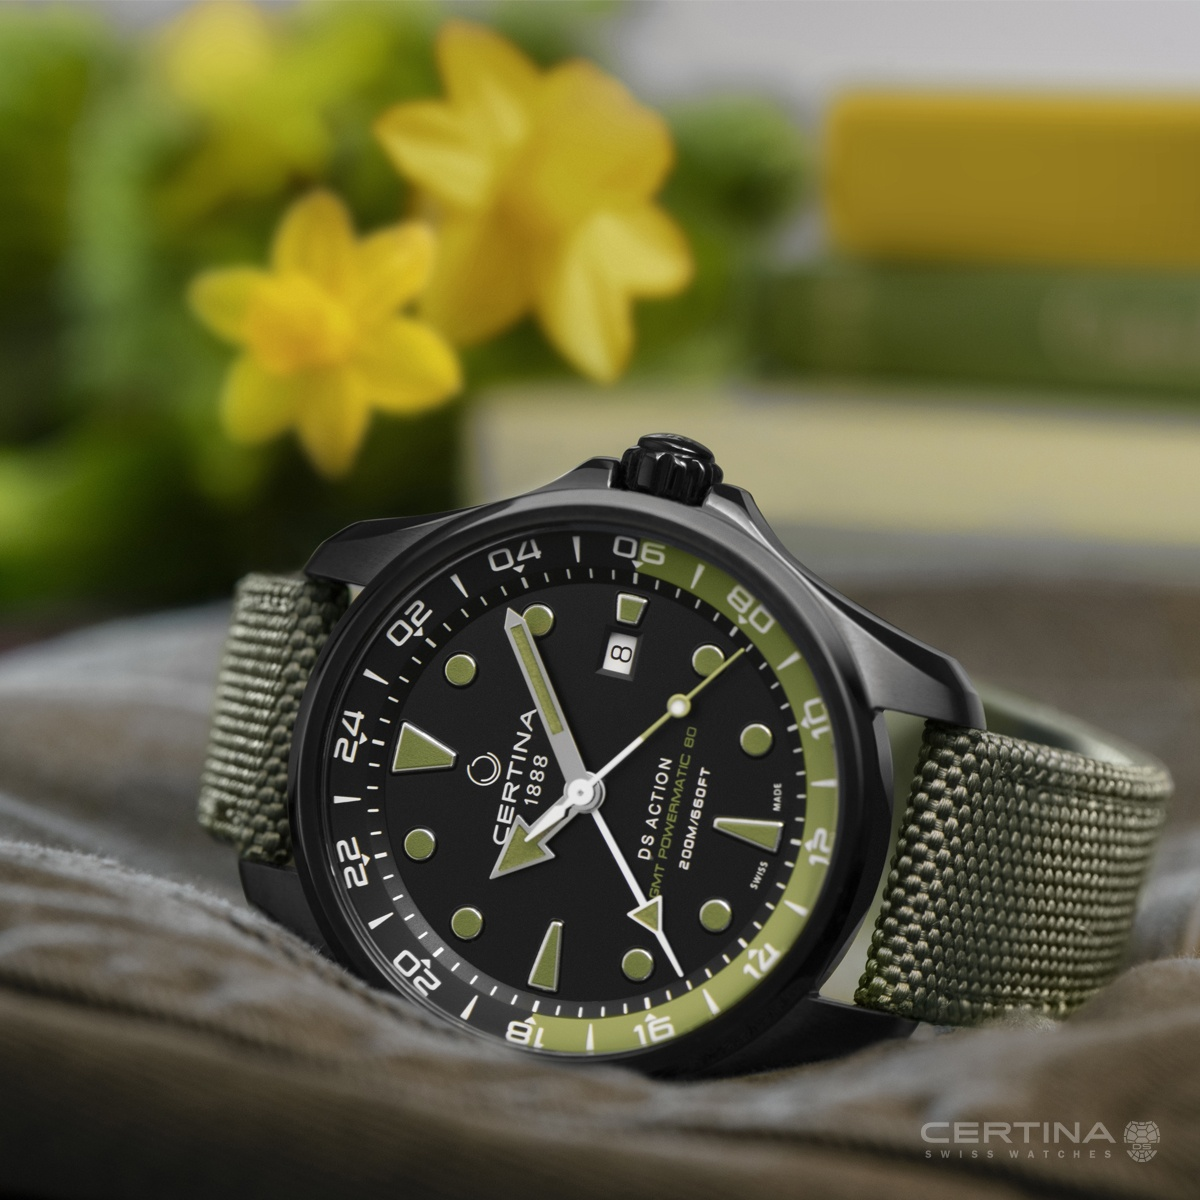 DS Action GMT Powermatic 80_C032.429.38.051.00_2019.03.20_SM-6778.jpg